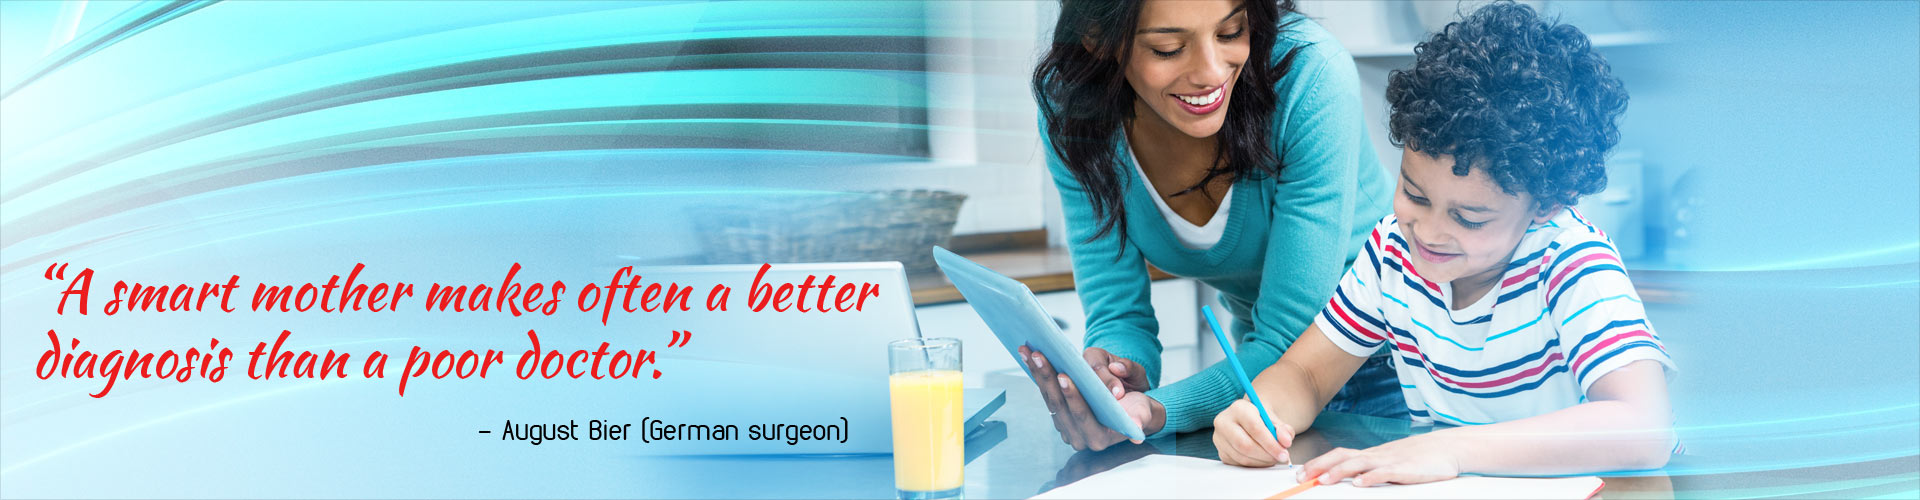 'A smart mother makes often a better diagnosis than a poor doctor.' - August Bier (German surgeon)